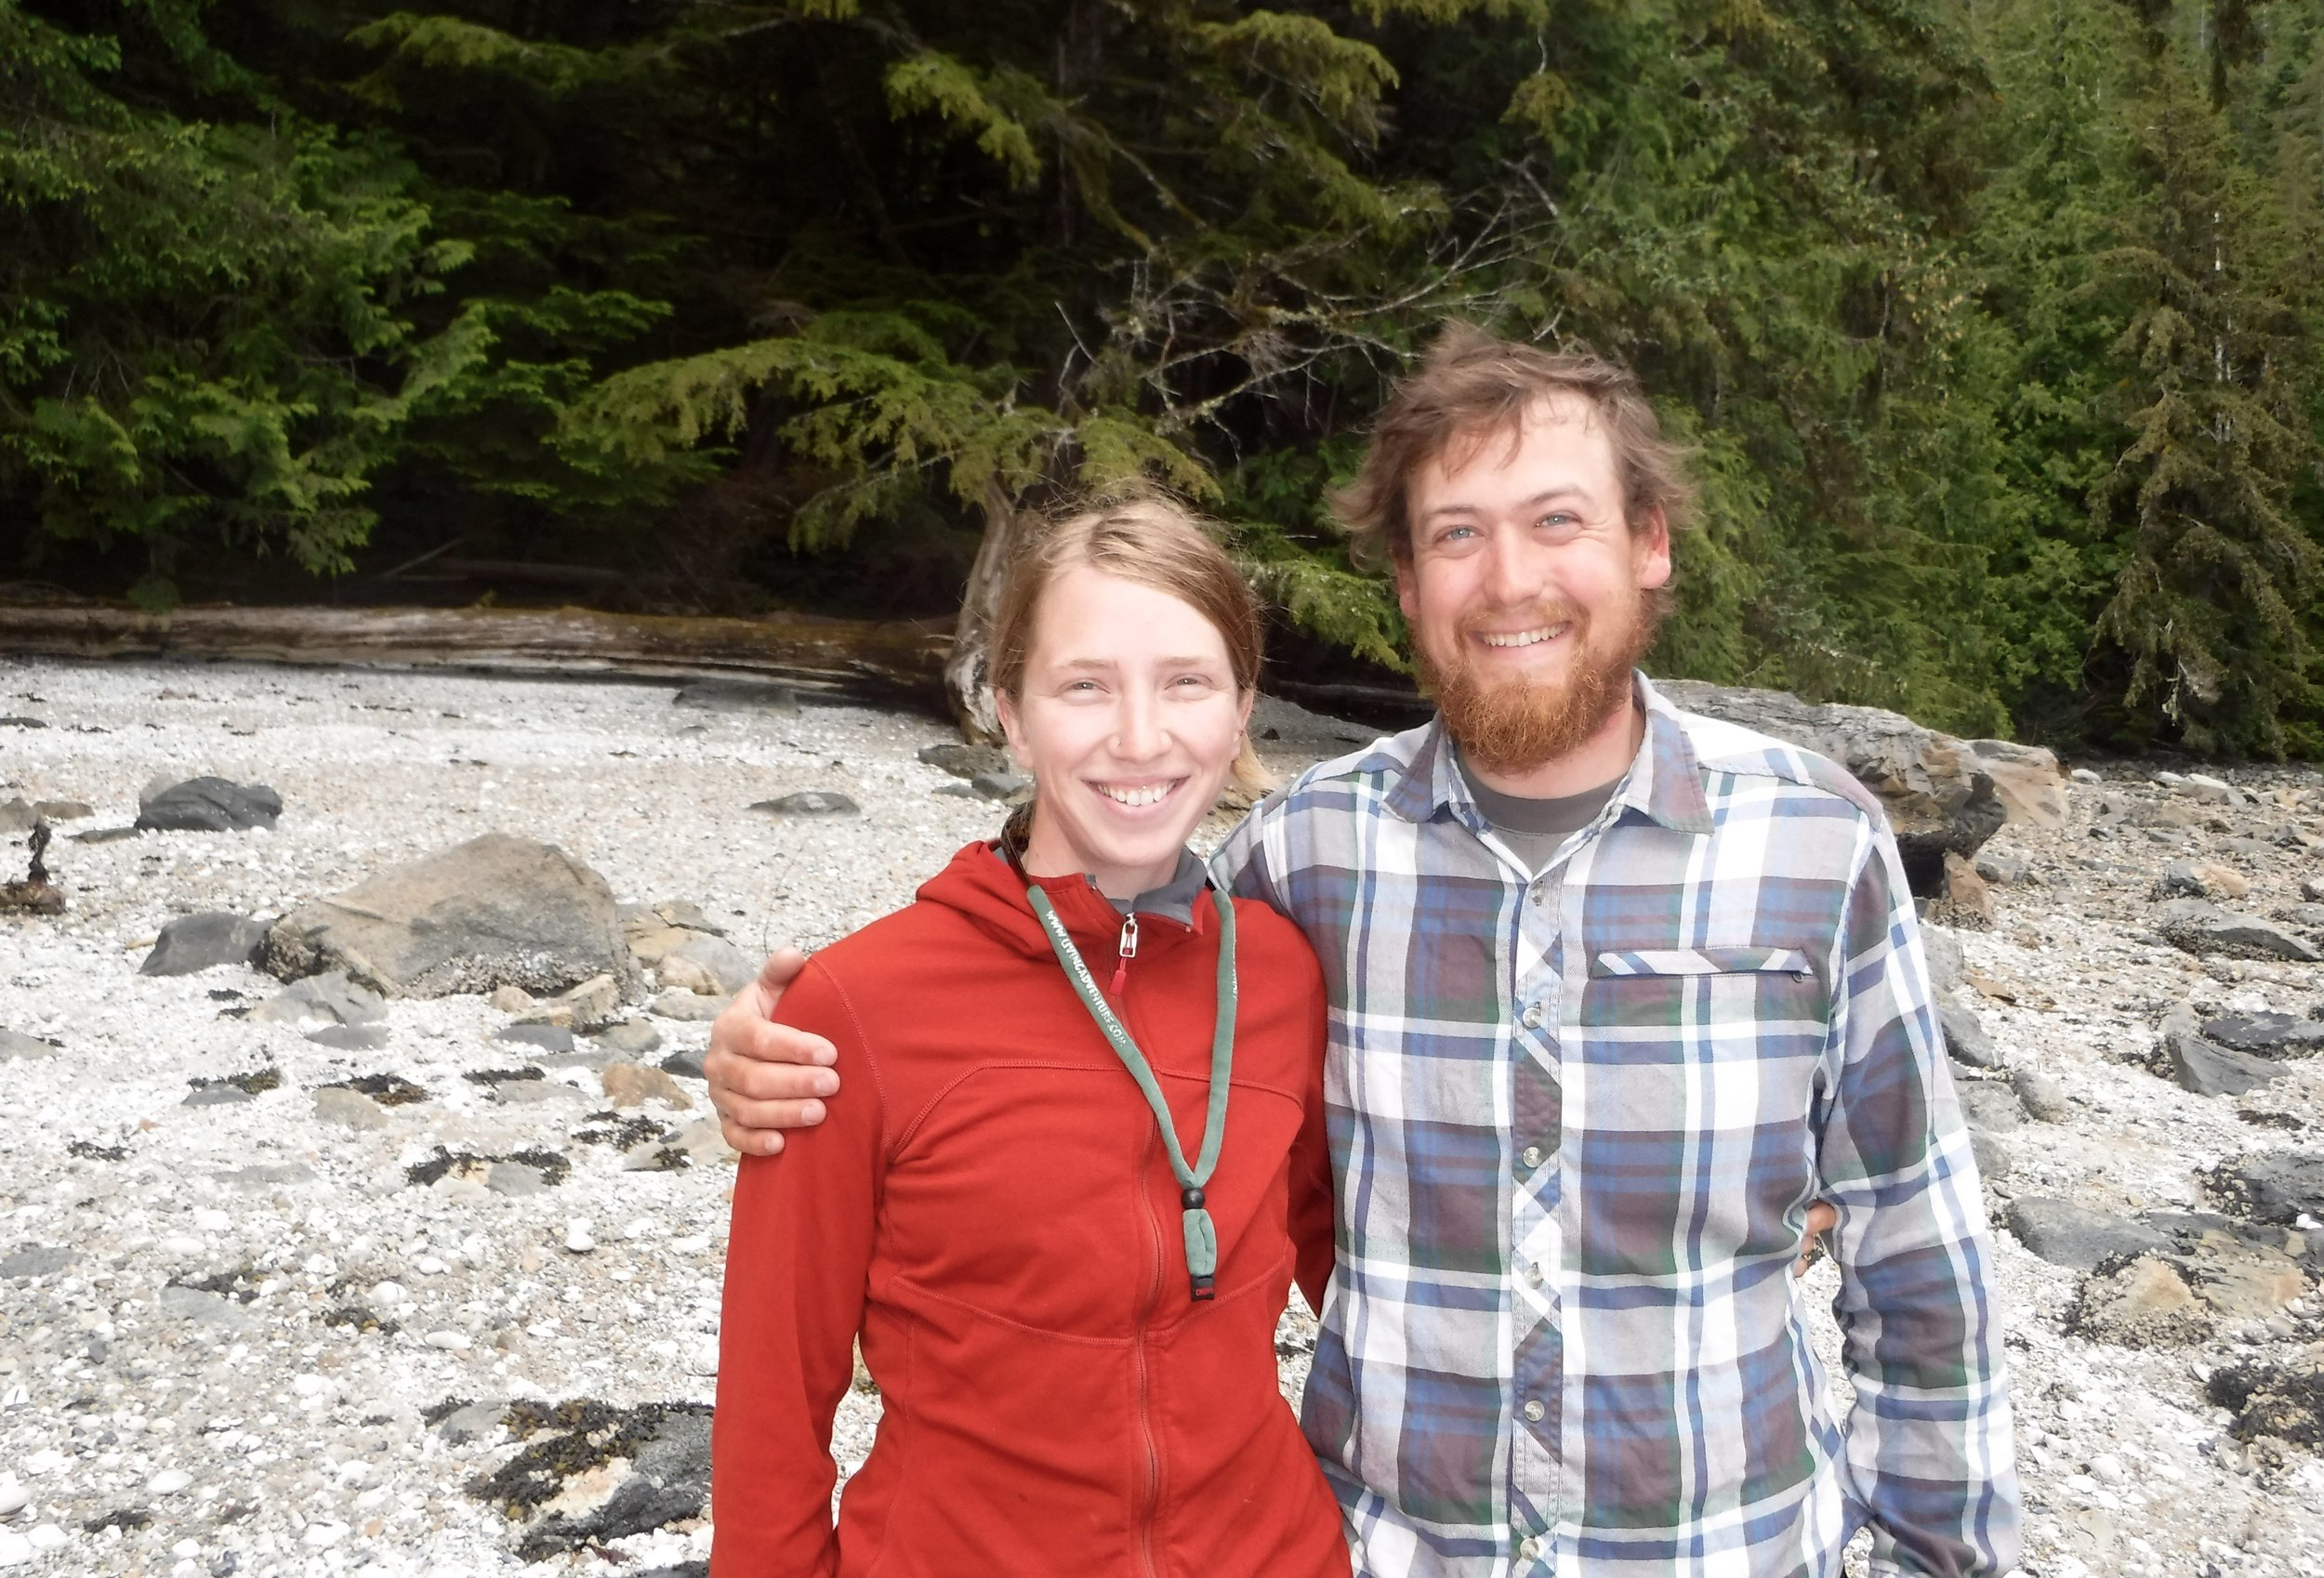 Hannah and Rodney - With these folks we have now met 4 kayakers doing the Inside Passage and that was all that we met for the rest of the trip